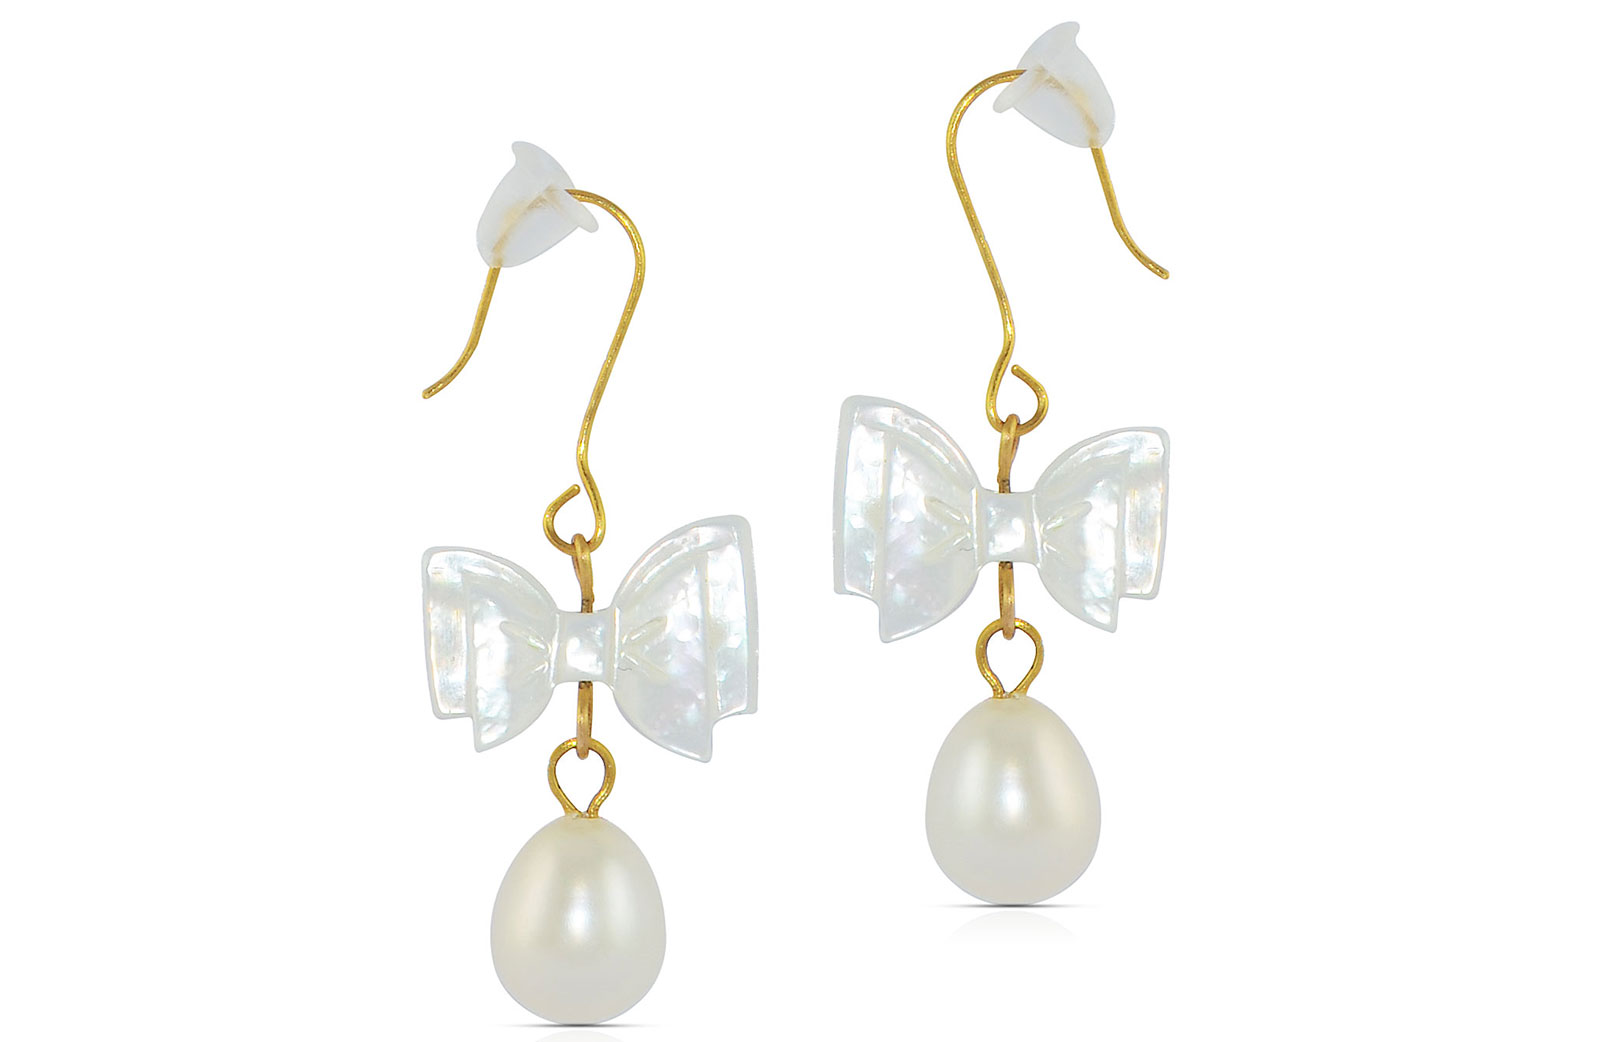 Vera Perla 10K Gold  Pearl and Bow MOP Delicate Earrings